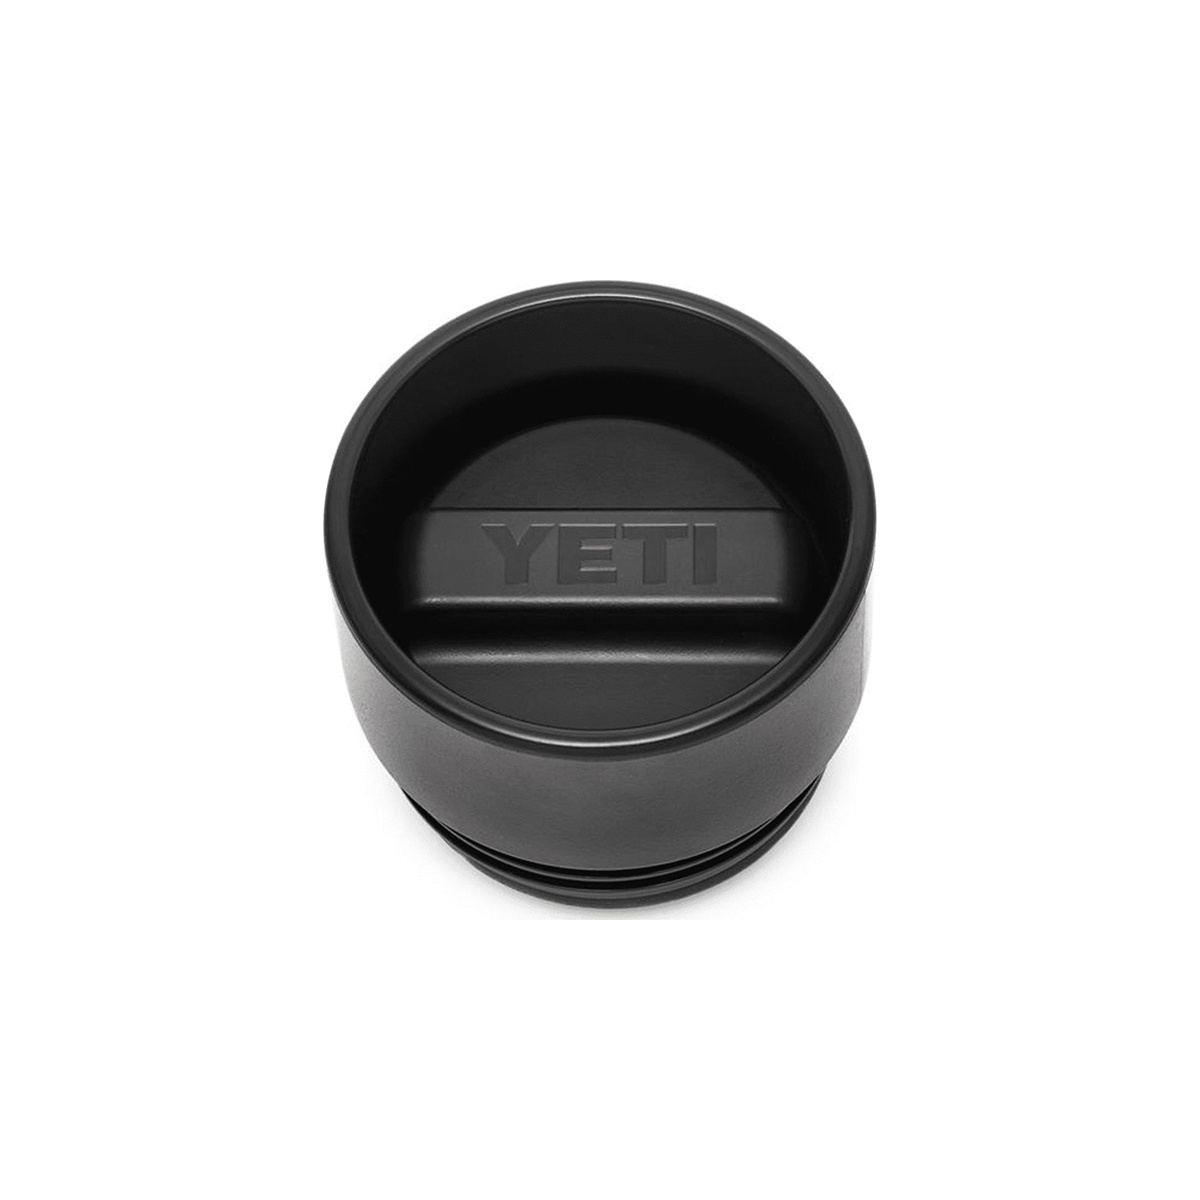 Yeti Rambler Bottle Hot Shot Cap